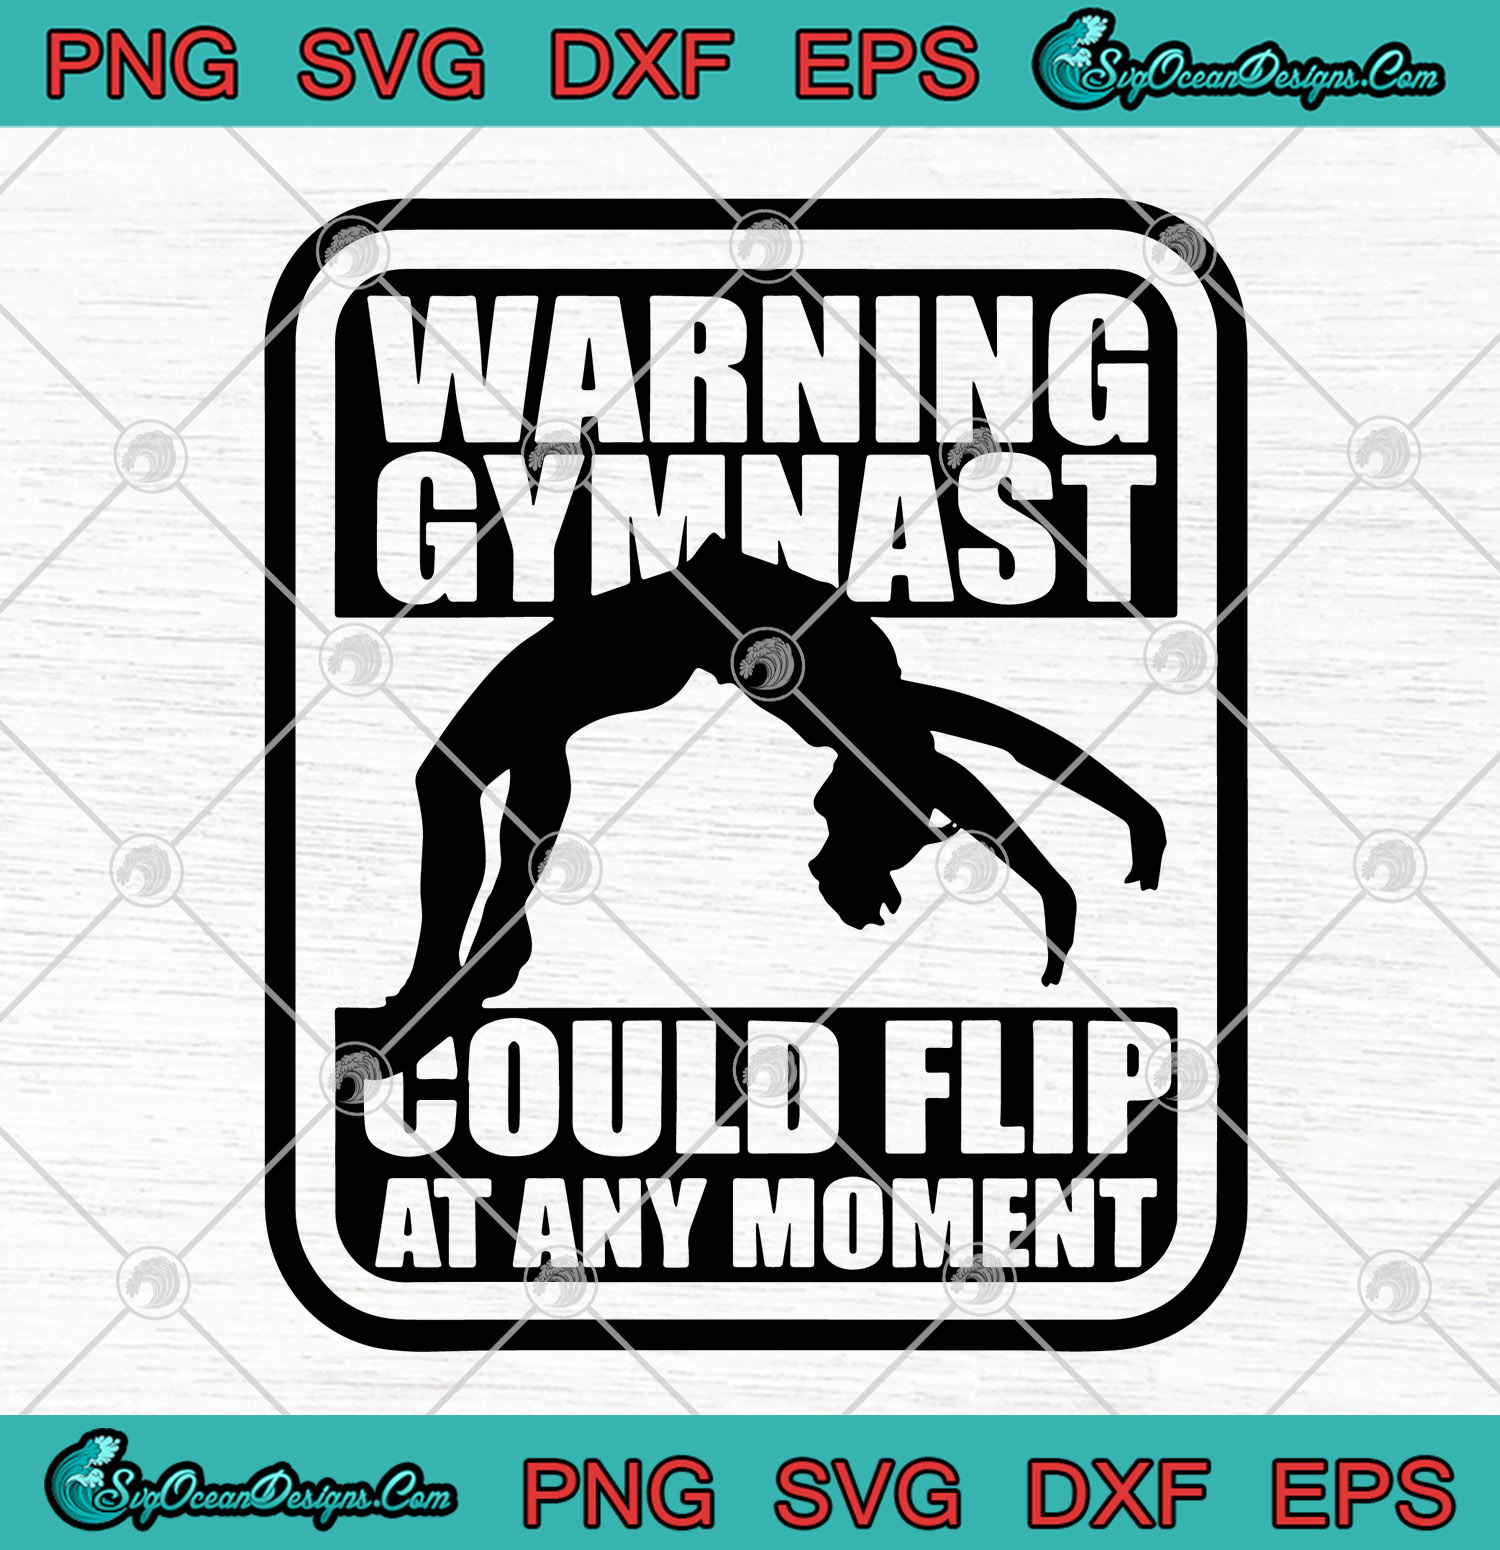 Warning Gymnast Could Flip At Any Moment Svg Png Dxf Eps Cutting File Cricut Silhouette Art Designs Digital Download